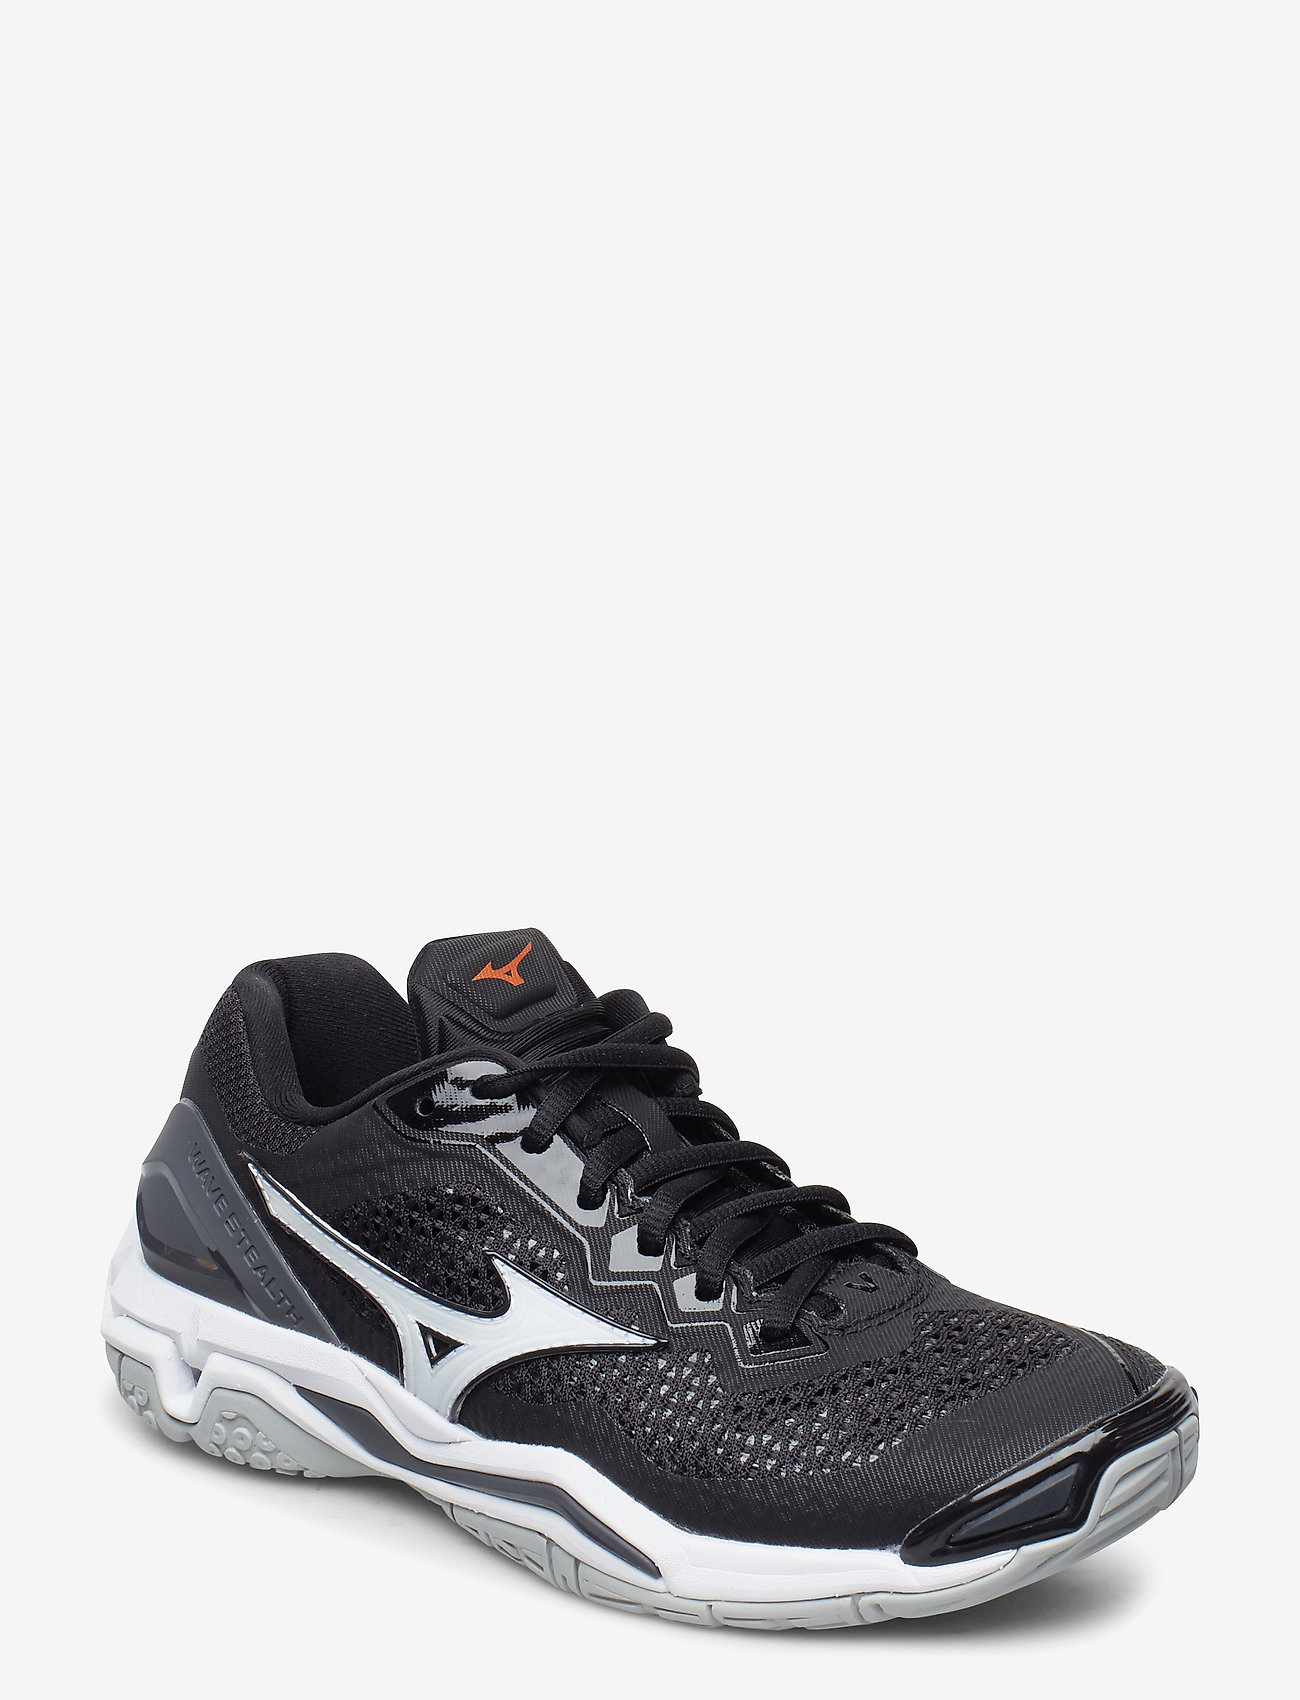 Mizuno - WAVE STEALTH V - inomhusskor - black / white / ebony - 0